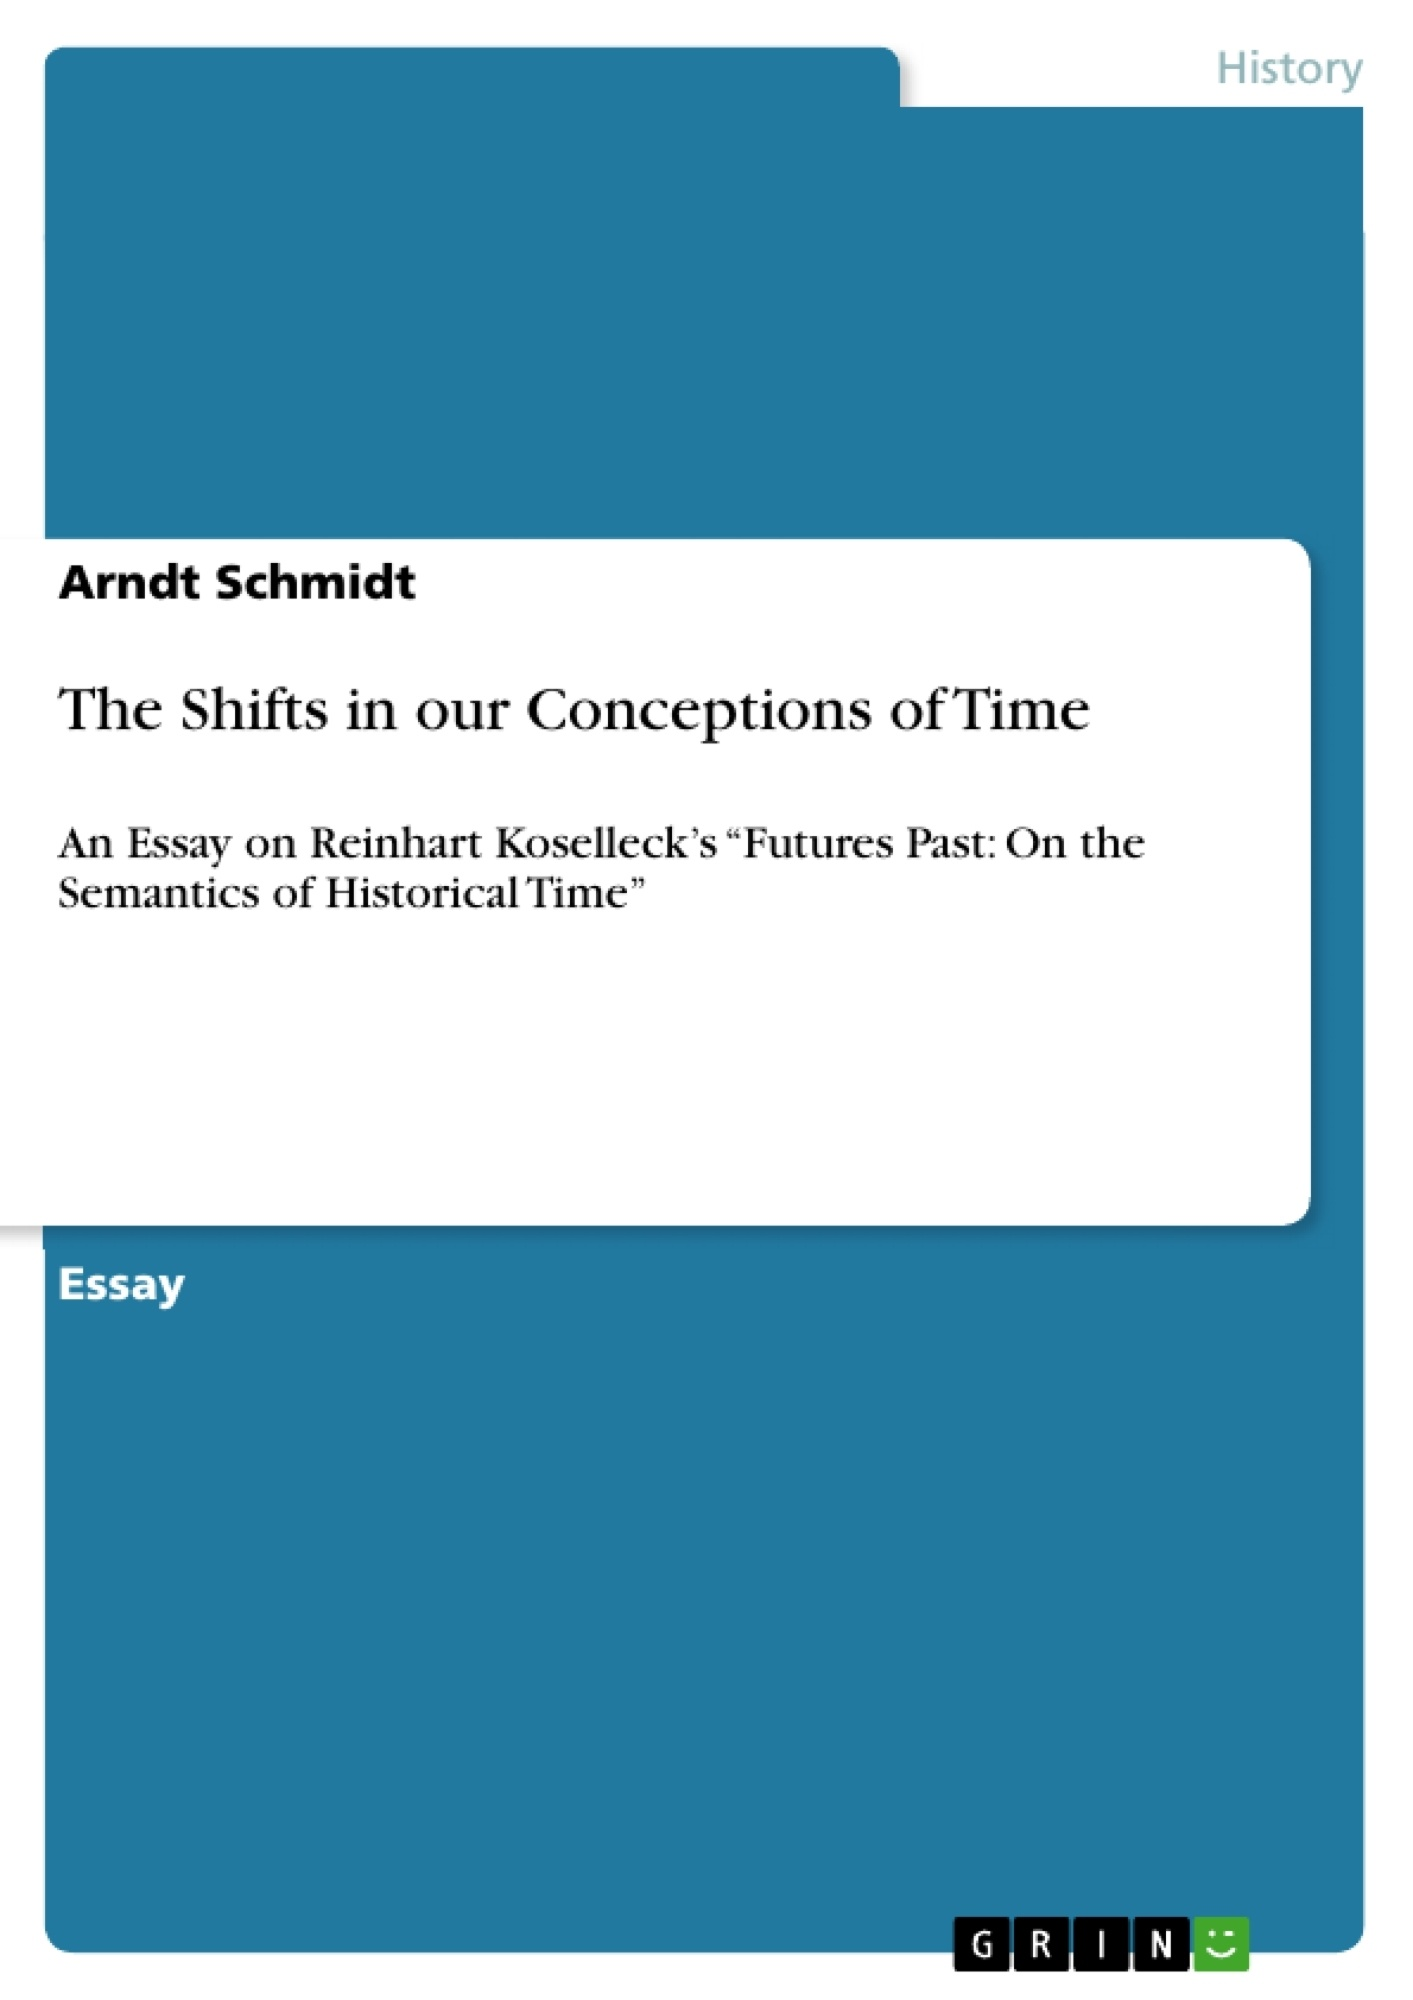 Title: The Shifts in our Conceptions of Time